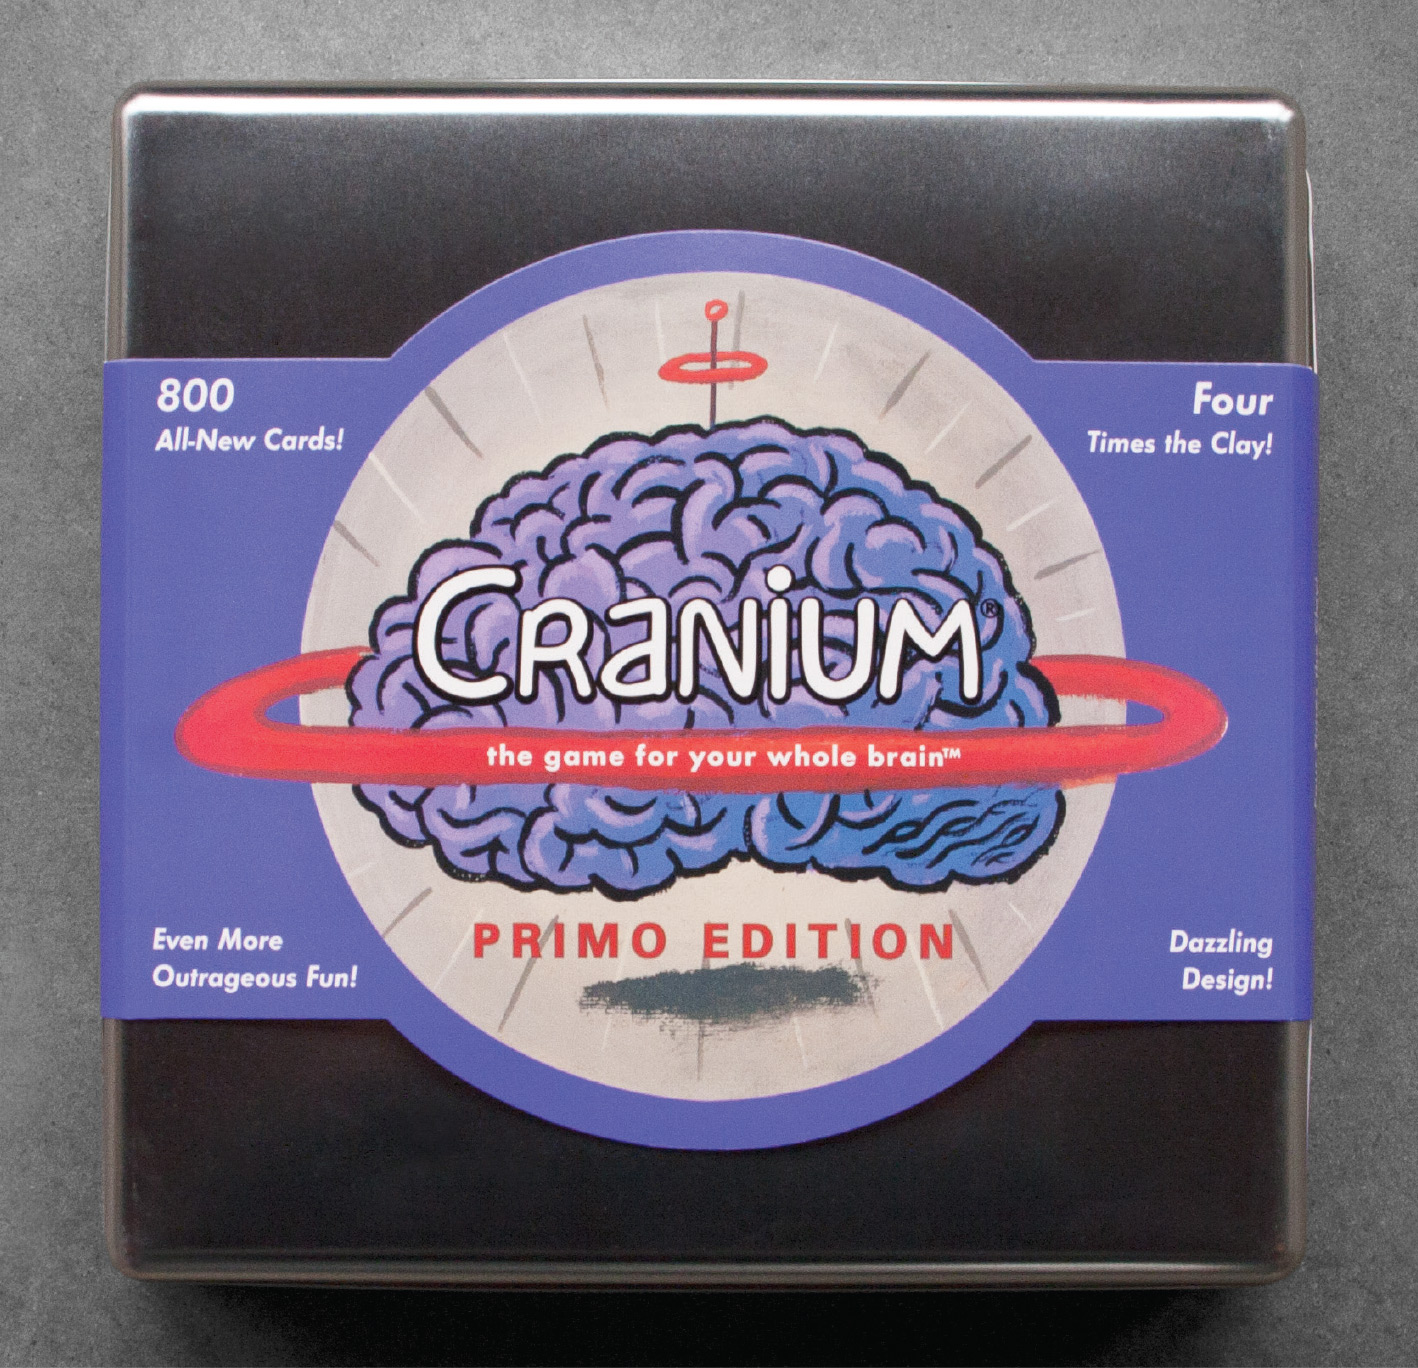 Cranium Packaging